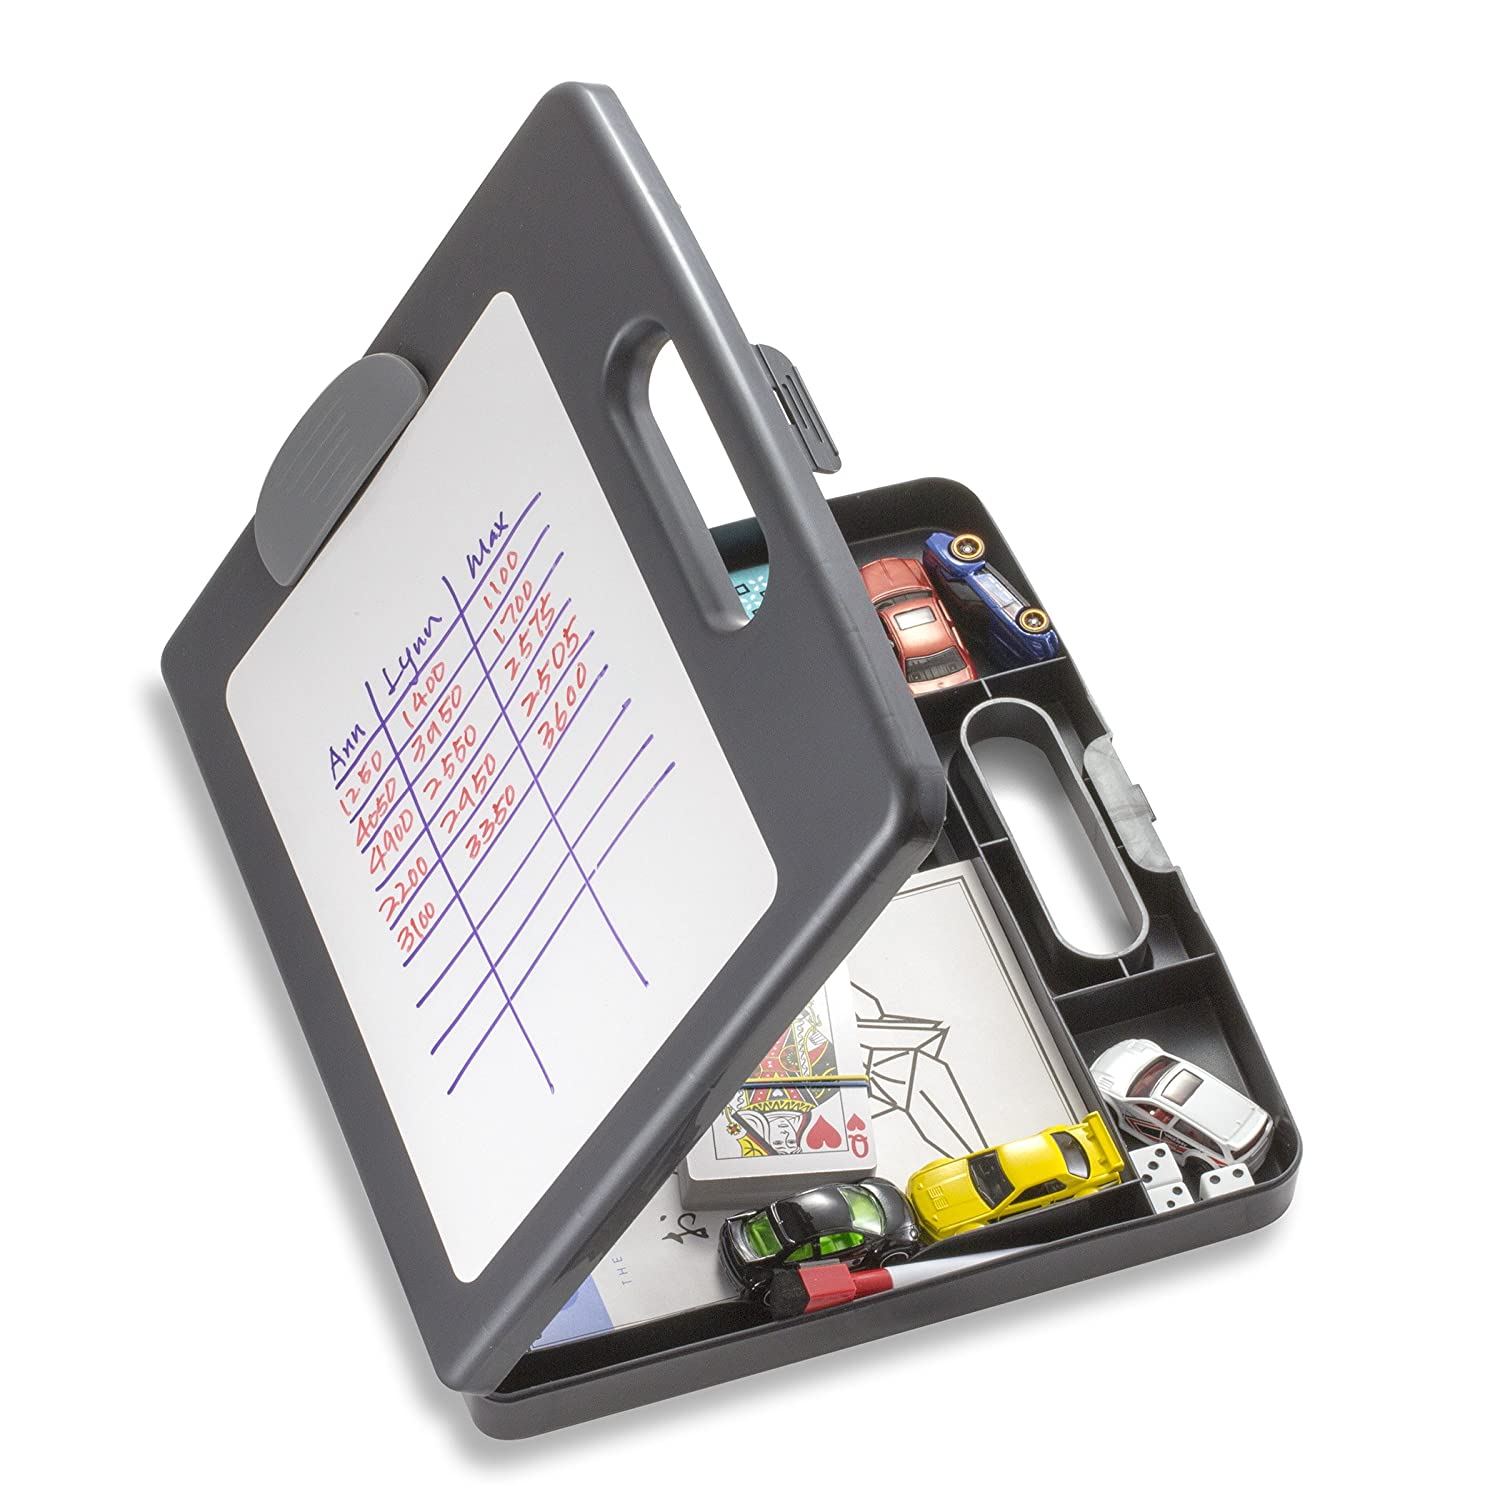 Officemate Clipboard Box for Activities with Dry Erase Board, Letter/A4 Size, Charcoal (83383) Officemate International